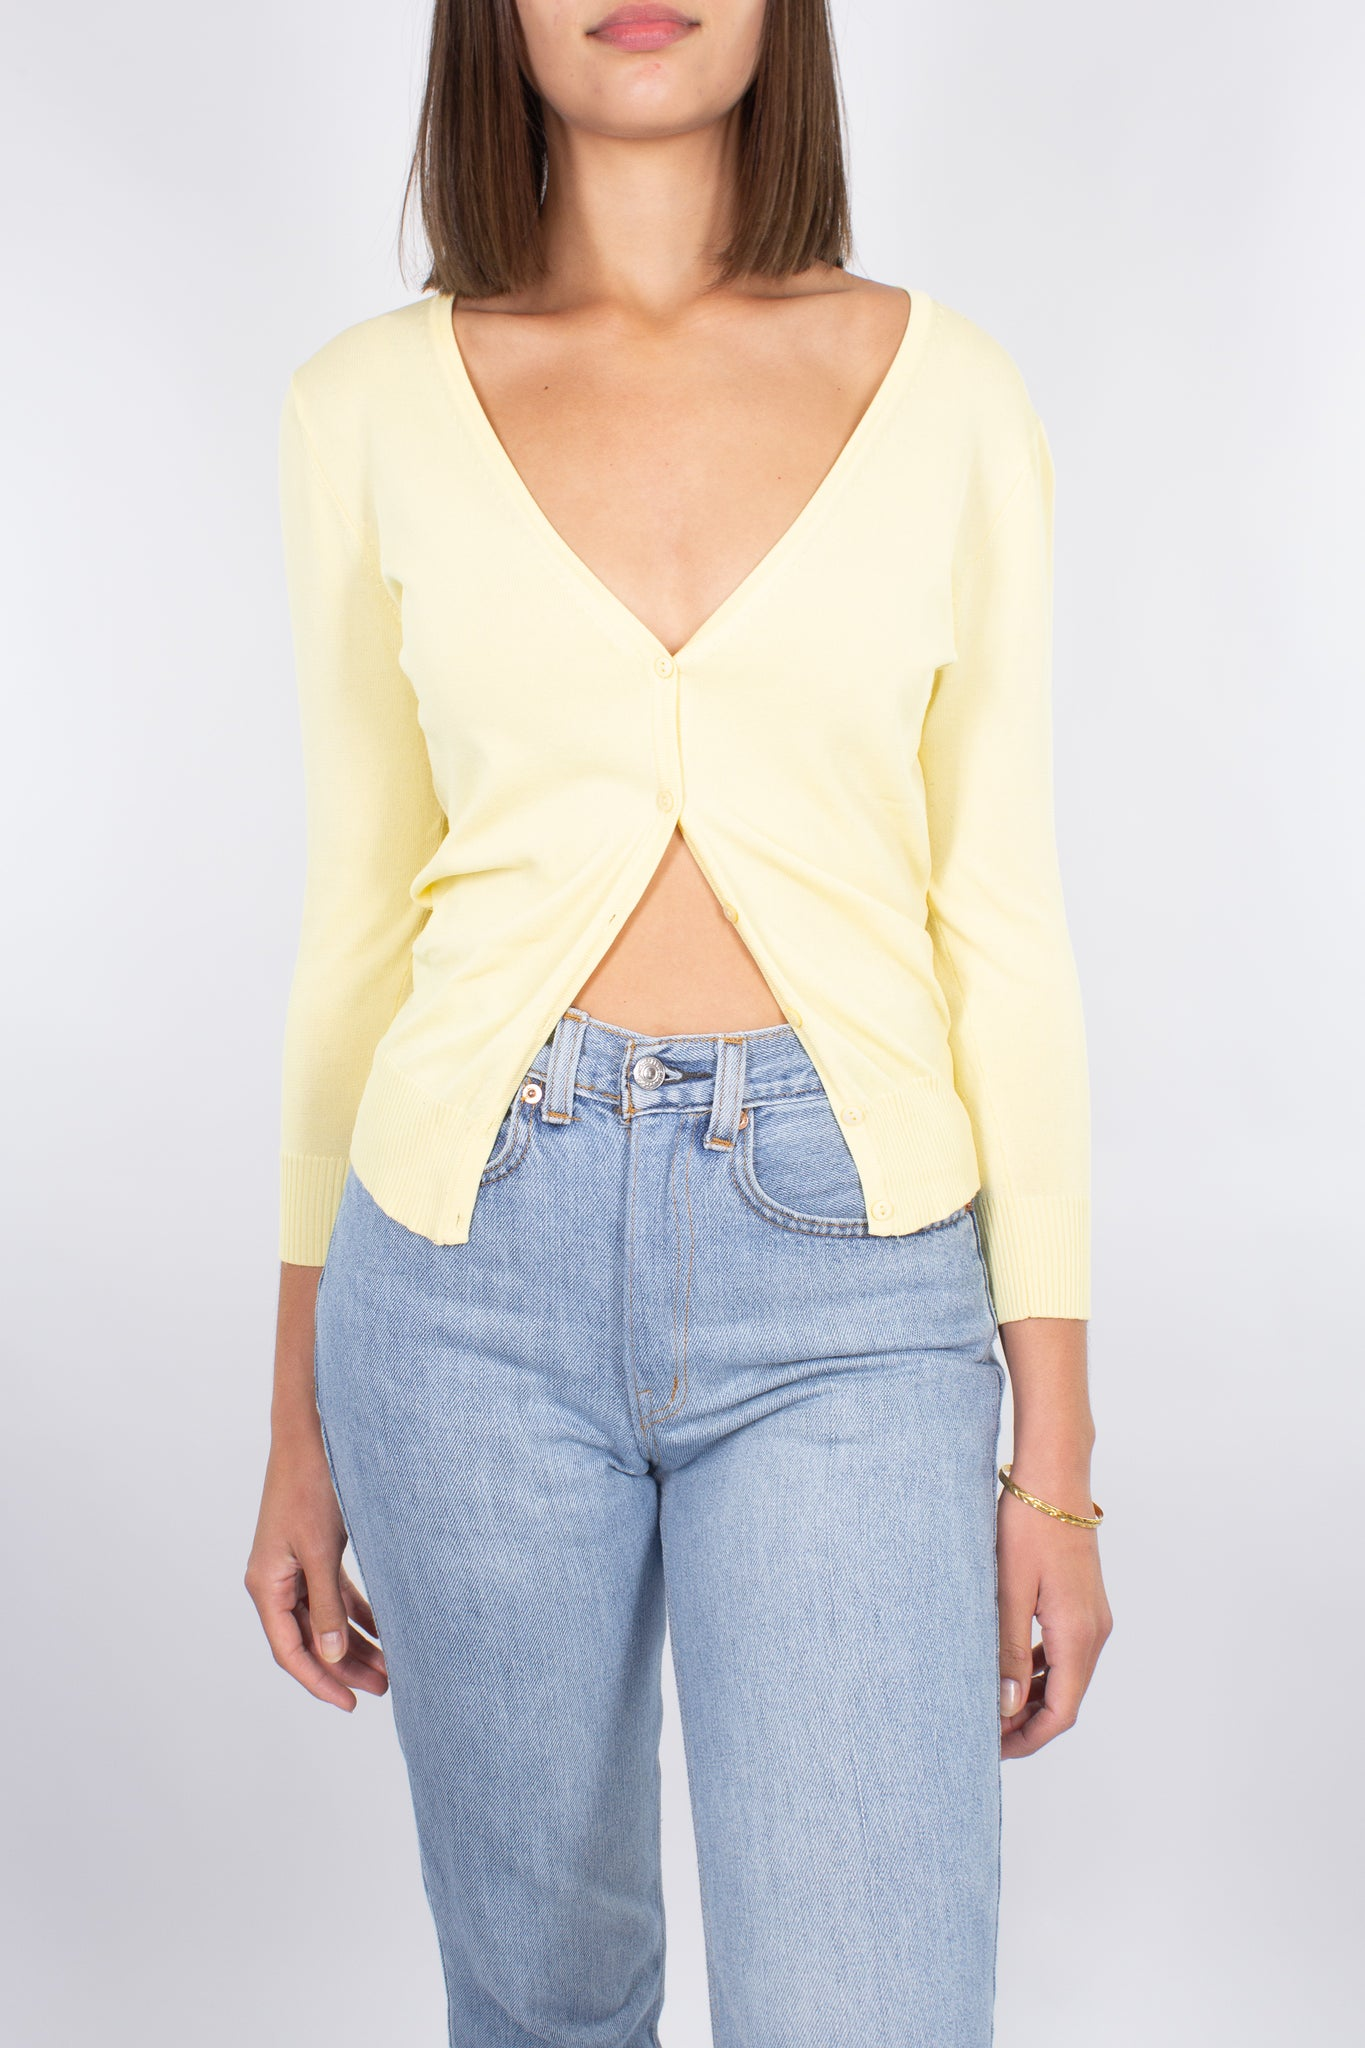 Lemon Yellow Knit Cardi - Size XS/S